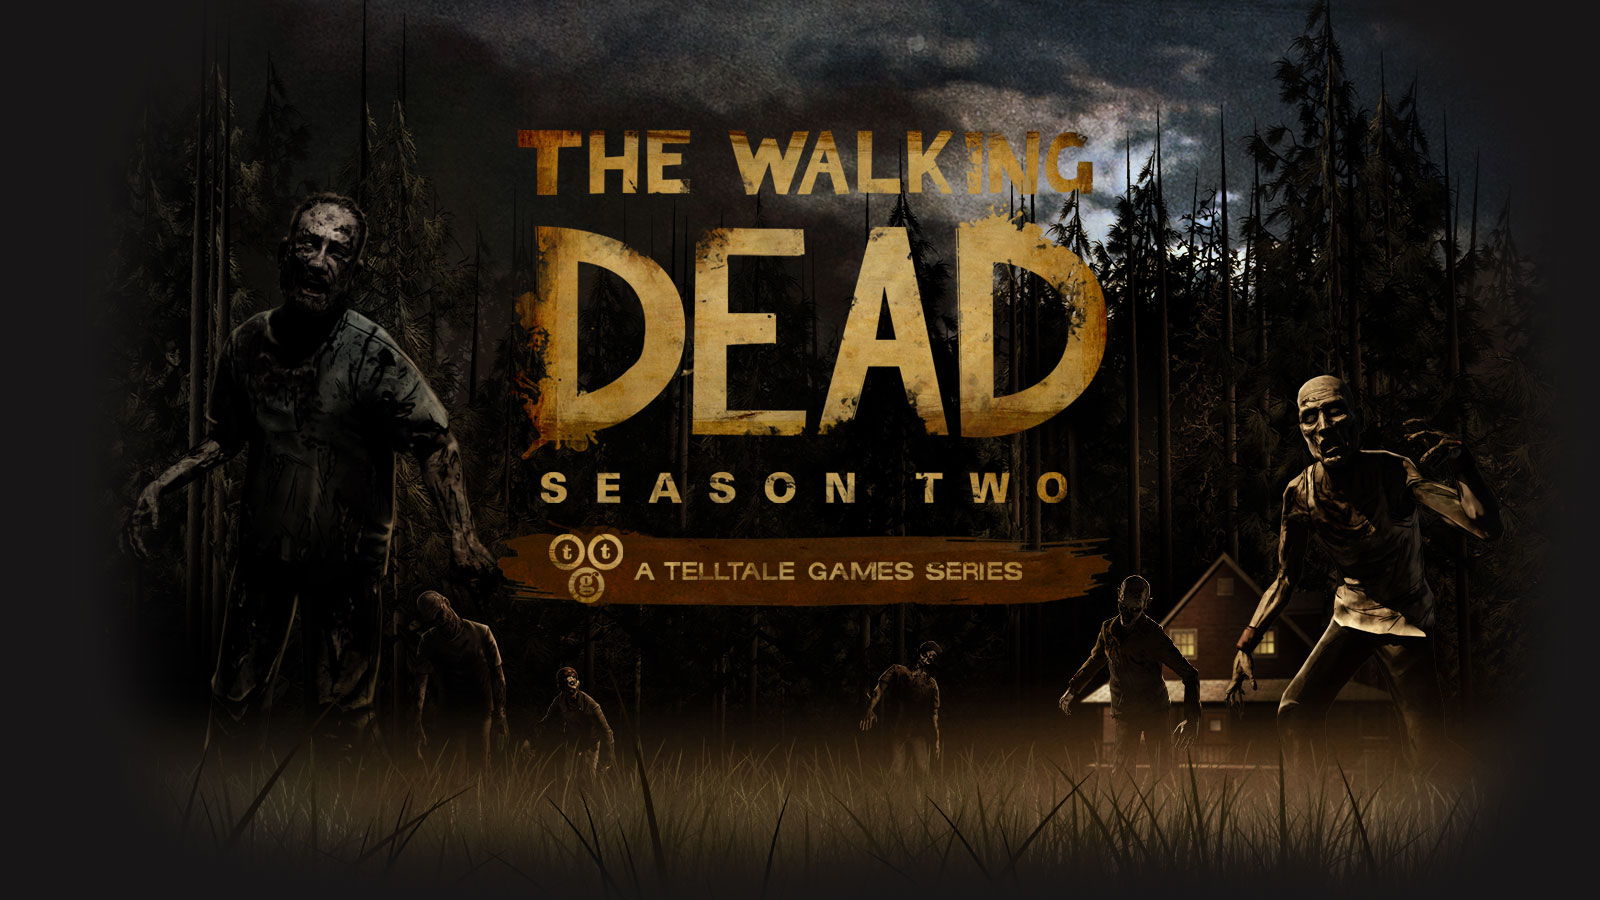 The Walking Dead season 2 Telltale Games